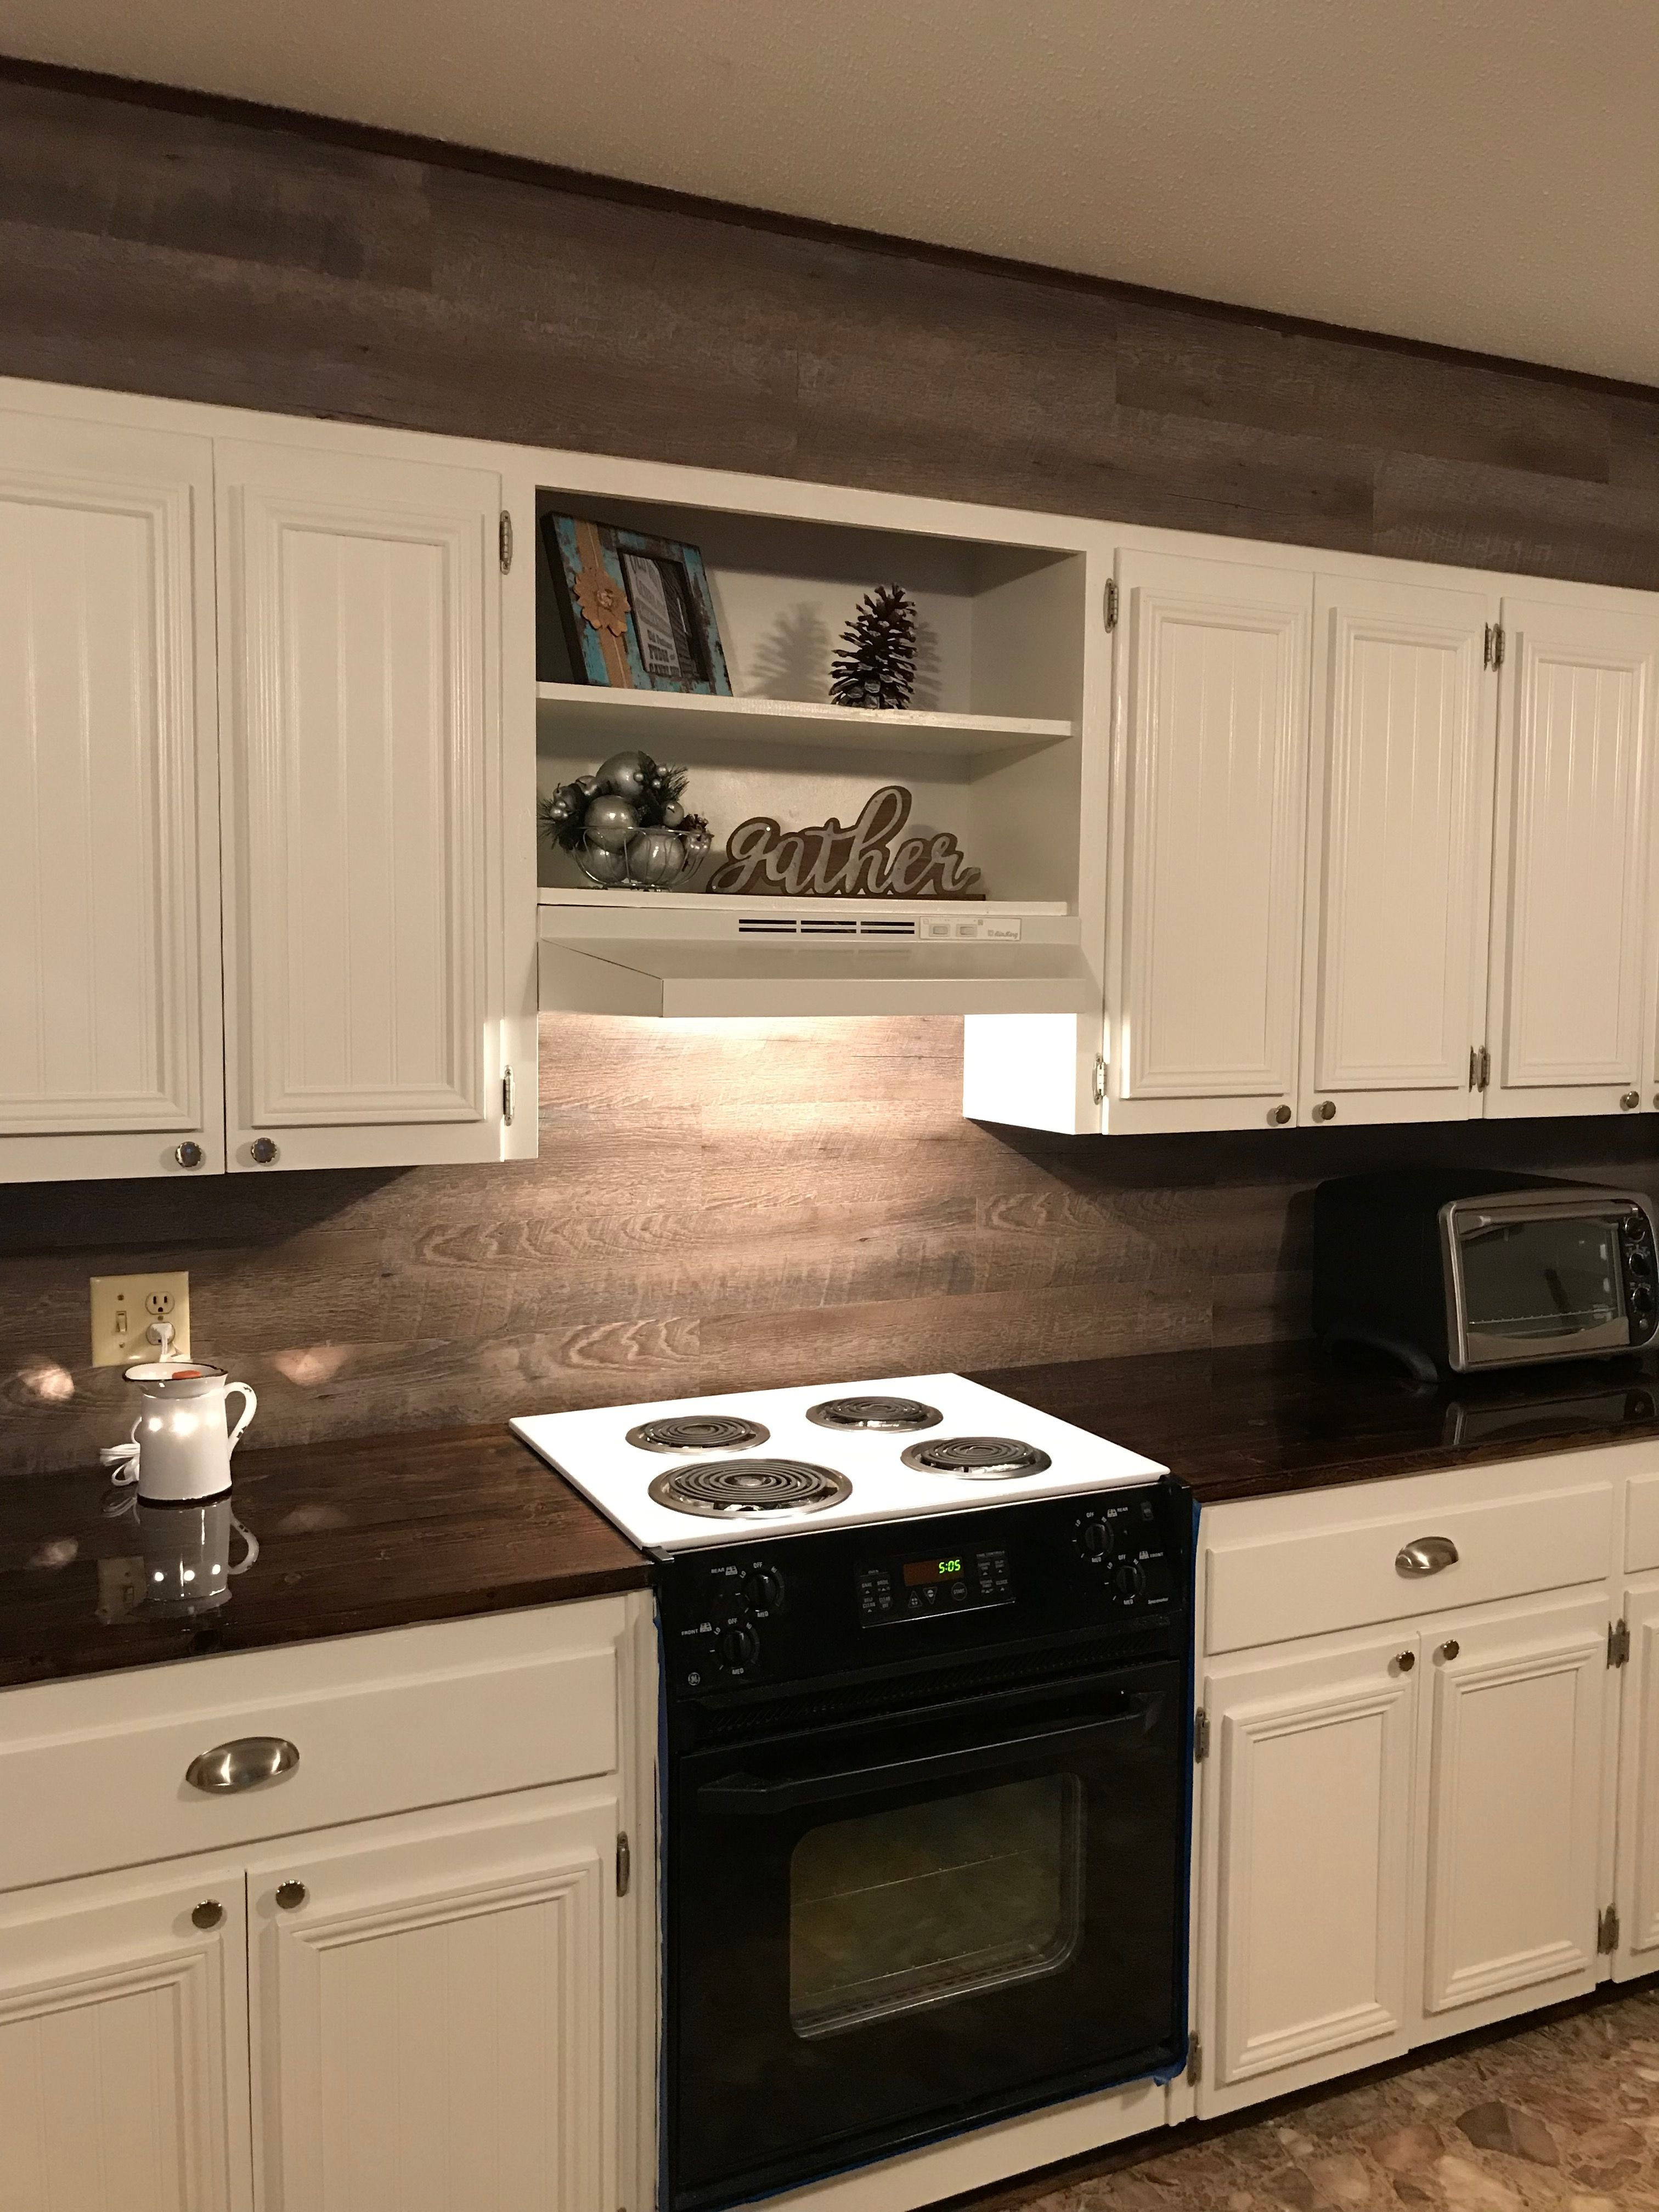 Farmhouse kitchen makeover at Asbury Cottage 2 in Pigeon